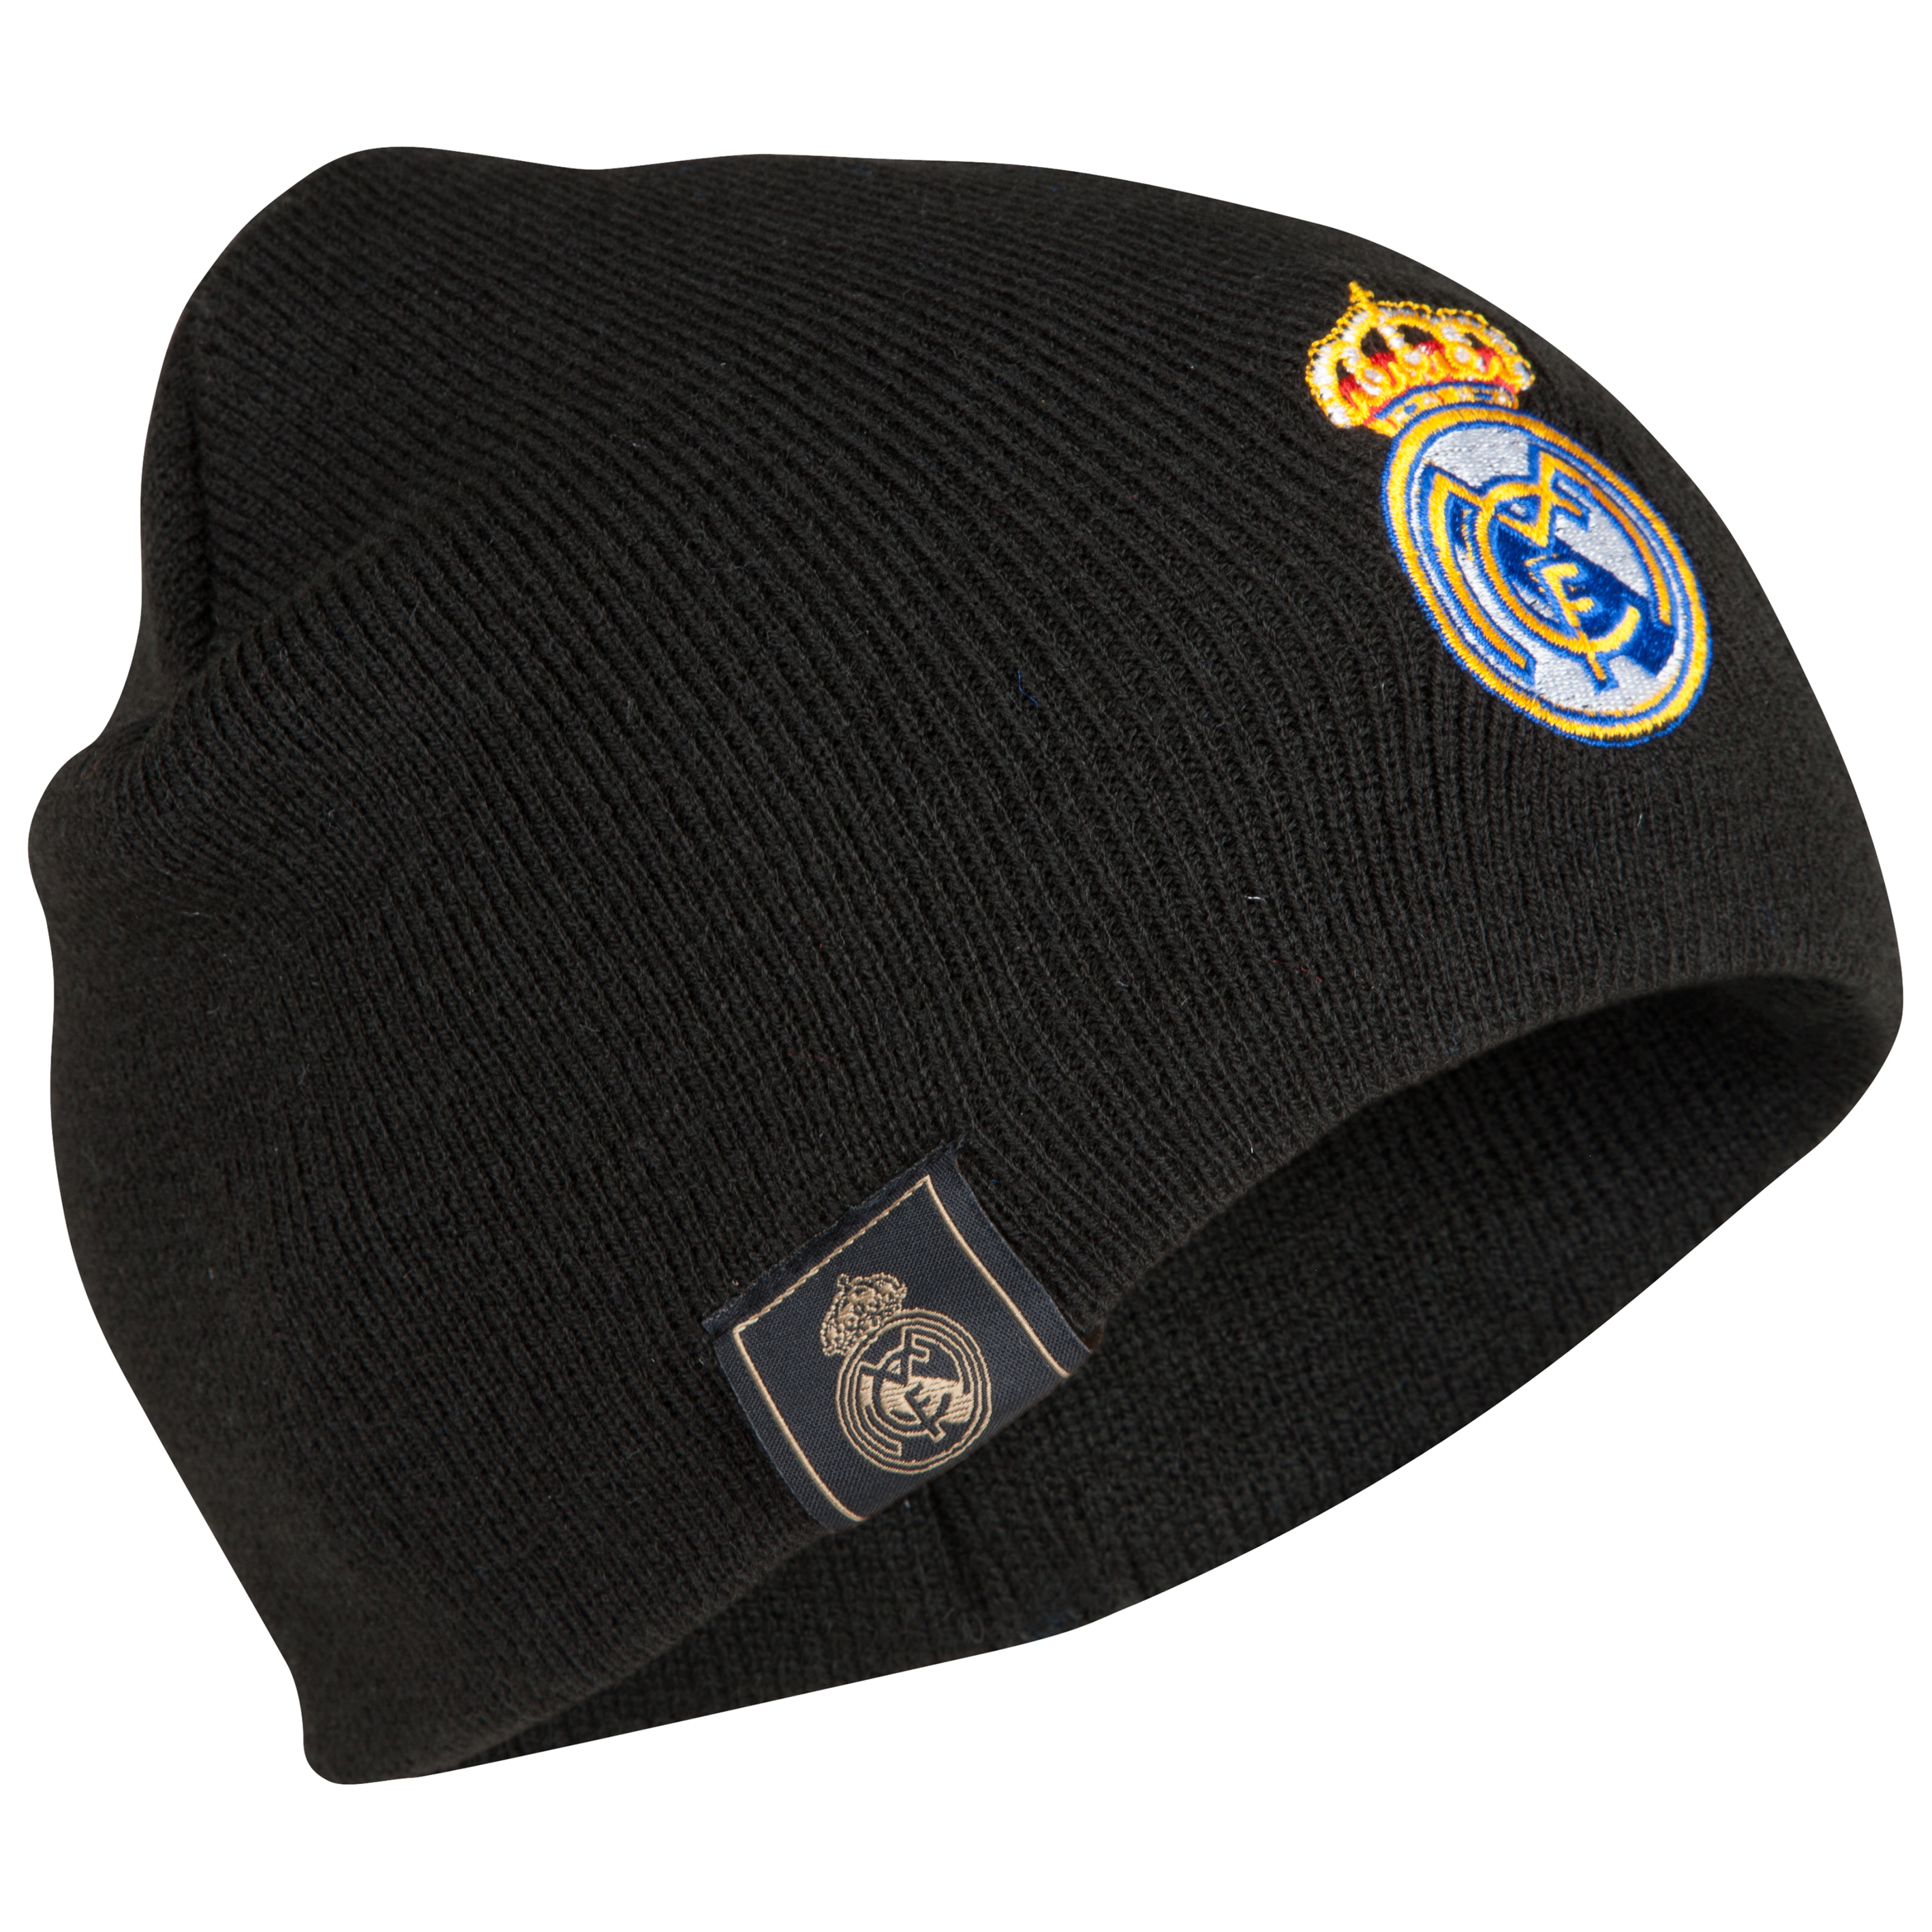 Real Madrid Crest Beanie - Black